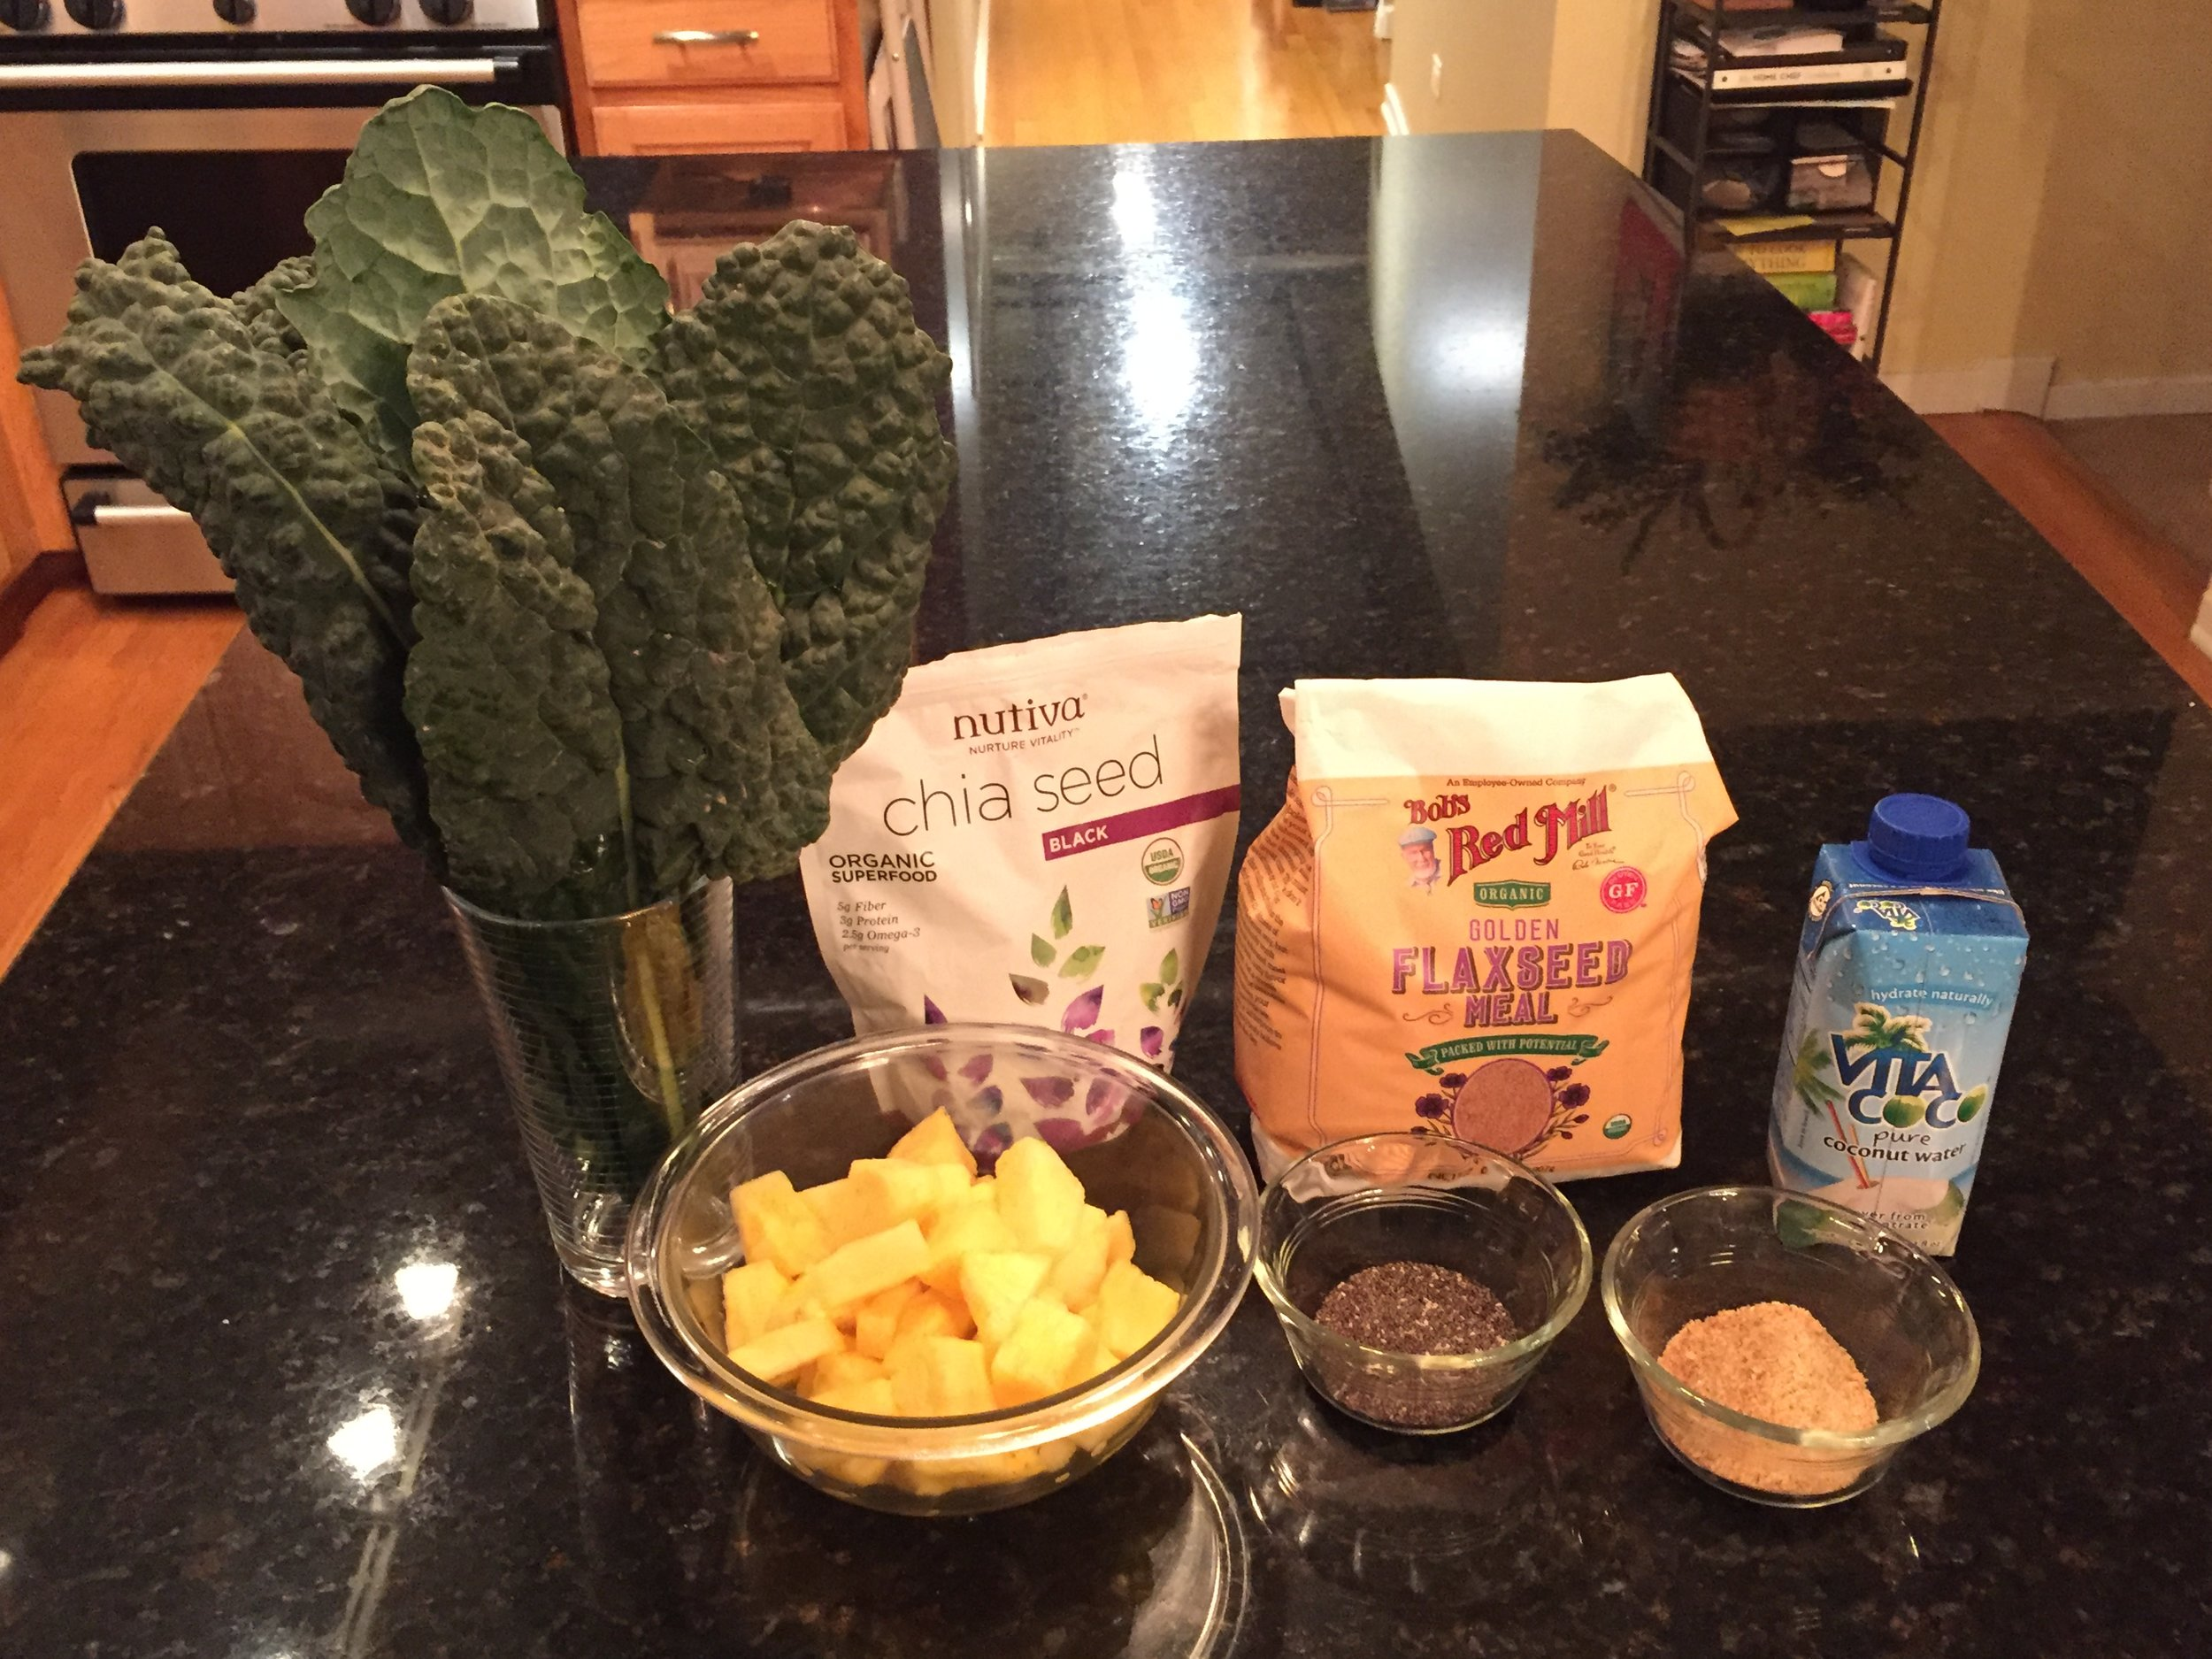 Pictured: Green chard, flax seed meal, coconut water, chopped mango & pineapple, I don't measure anymore. Basically I just fill the blender with fruit & coconut water first, then flax seed, followed by as much greens as I can fit in. Next I cover it all with more regular water. Our finished drink is more like a juice than a smoothie. Chia seeds go into each individual serving last.